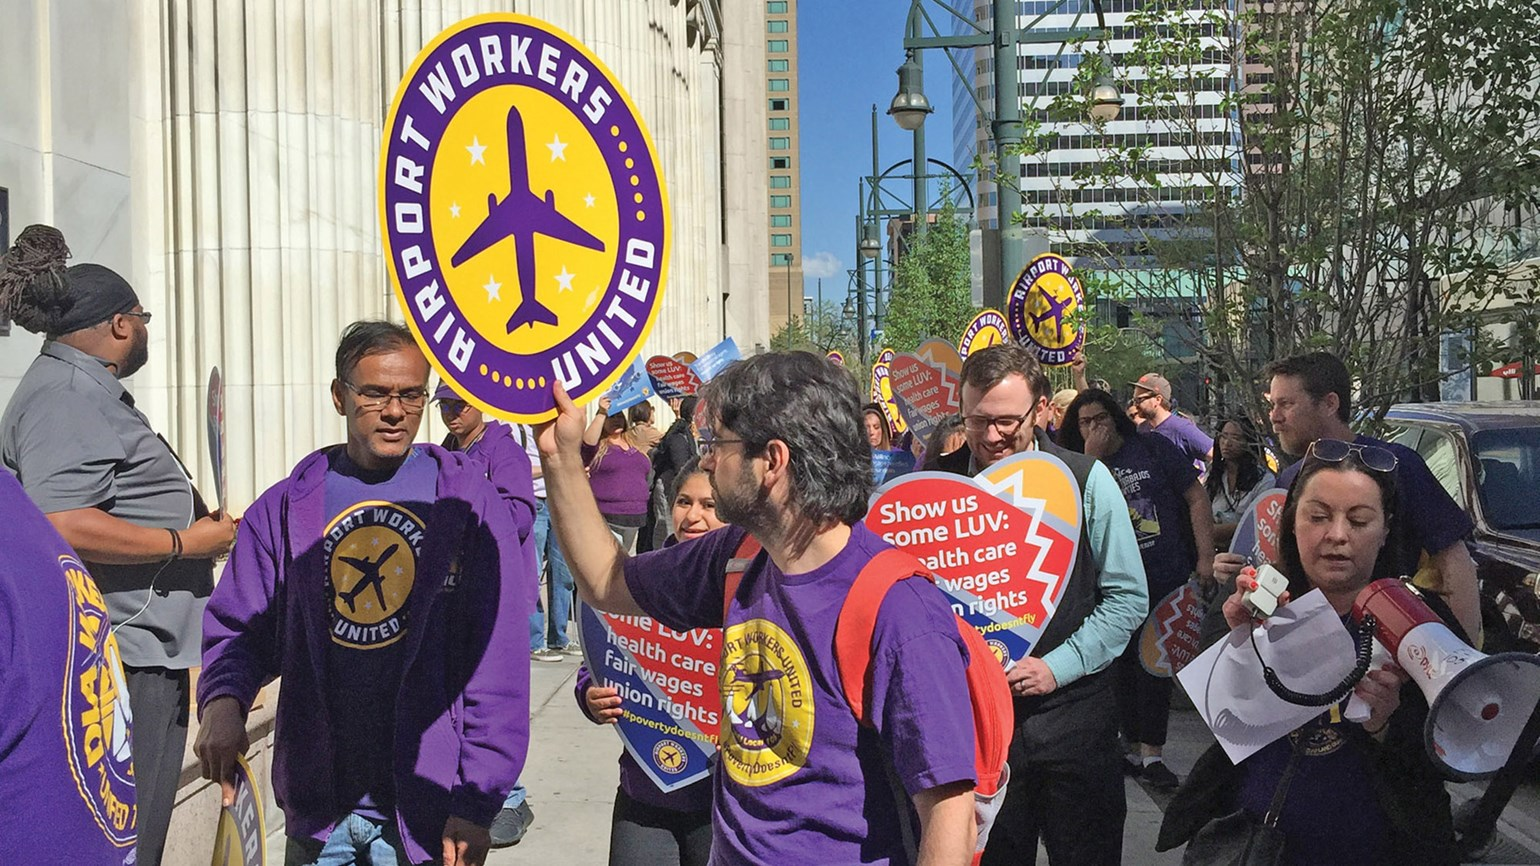 Labor unrest grows as airlines outsource jobs to contractors